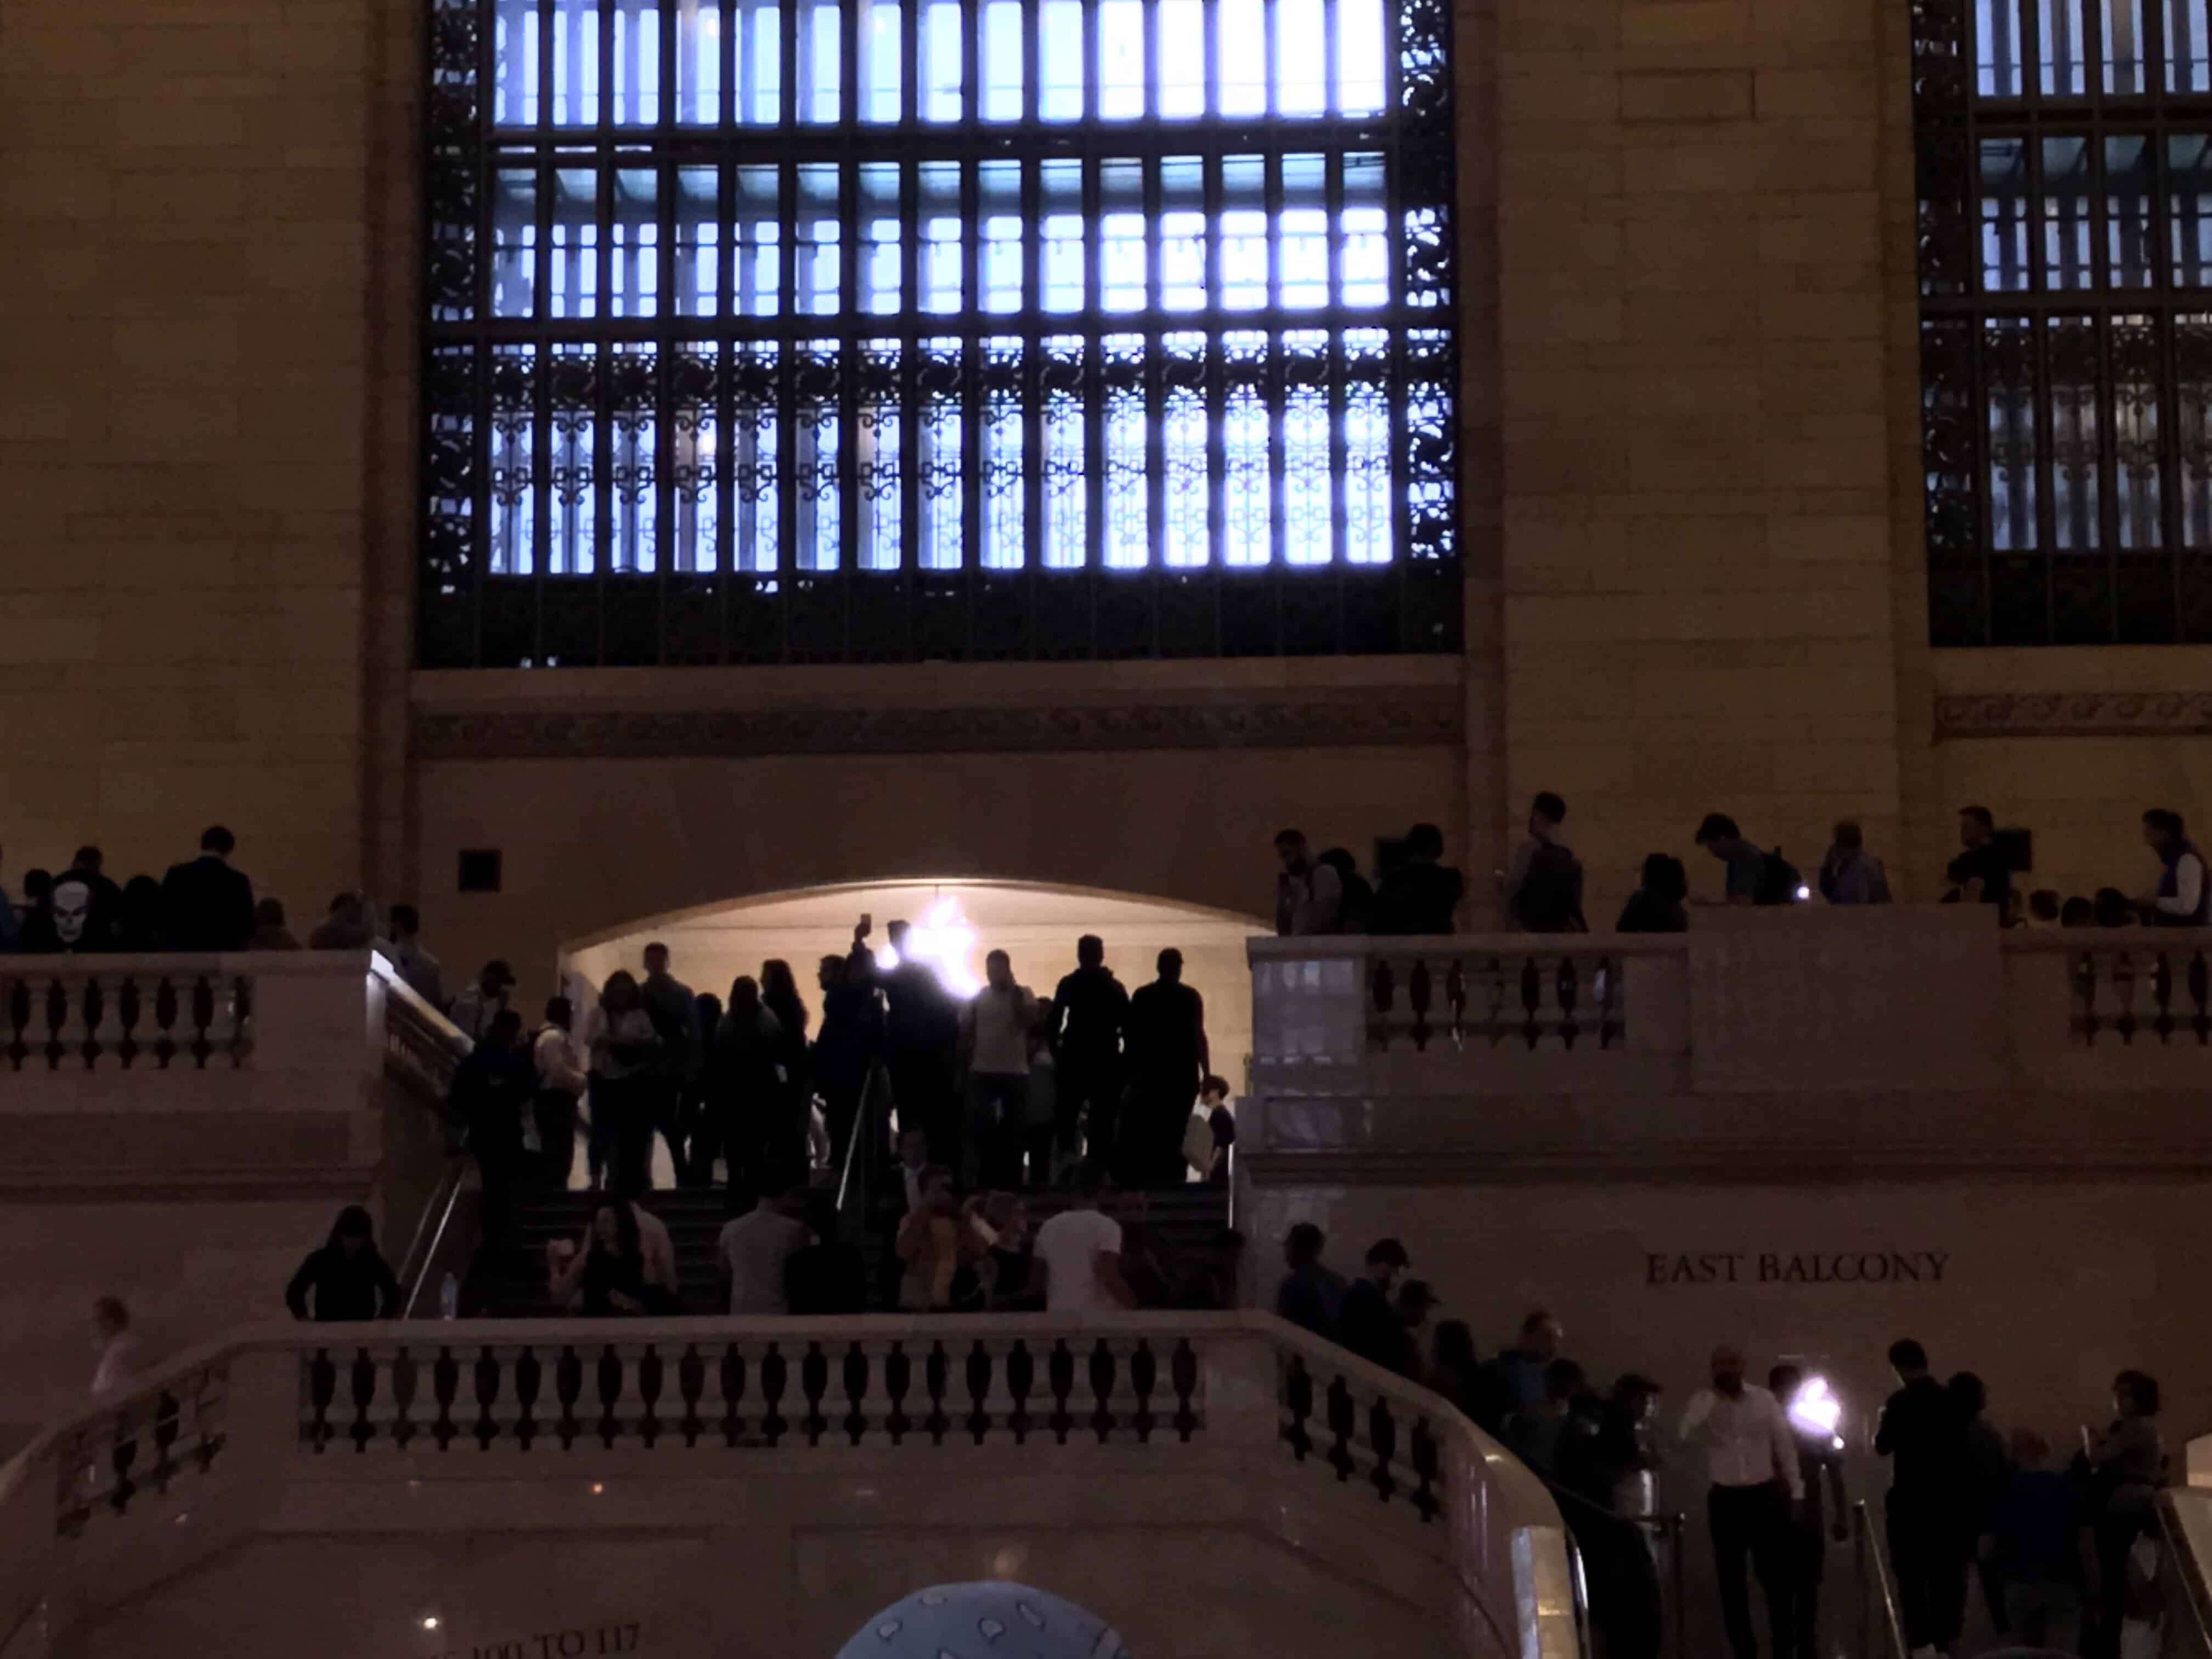 Apple Store New York Grand Central jour sortie iPhone X/S/Max/Plus